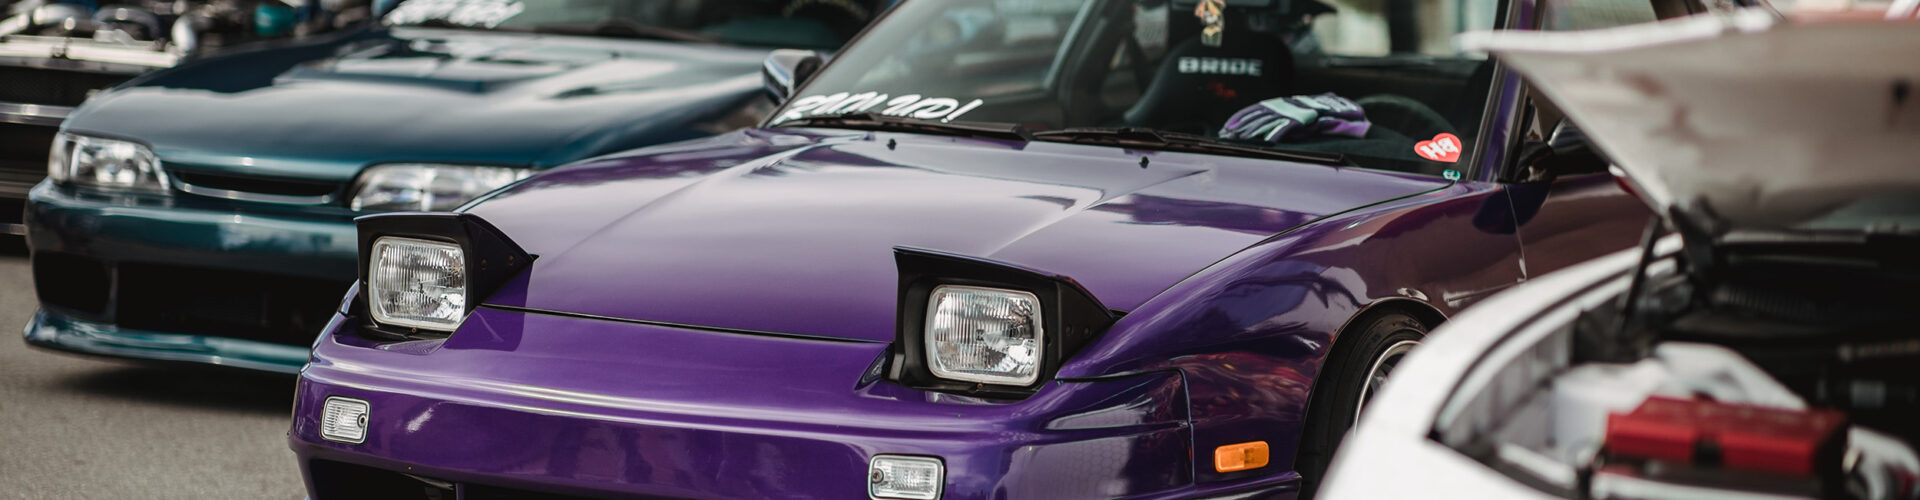 Purple and black Ford Mustang